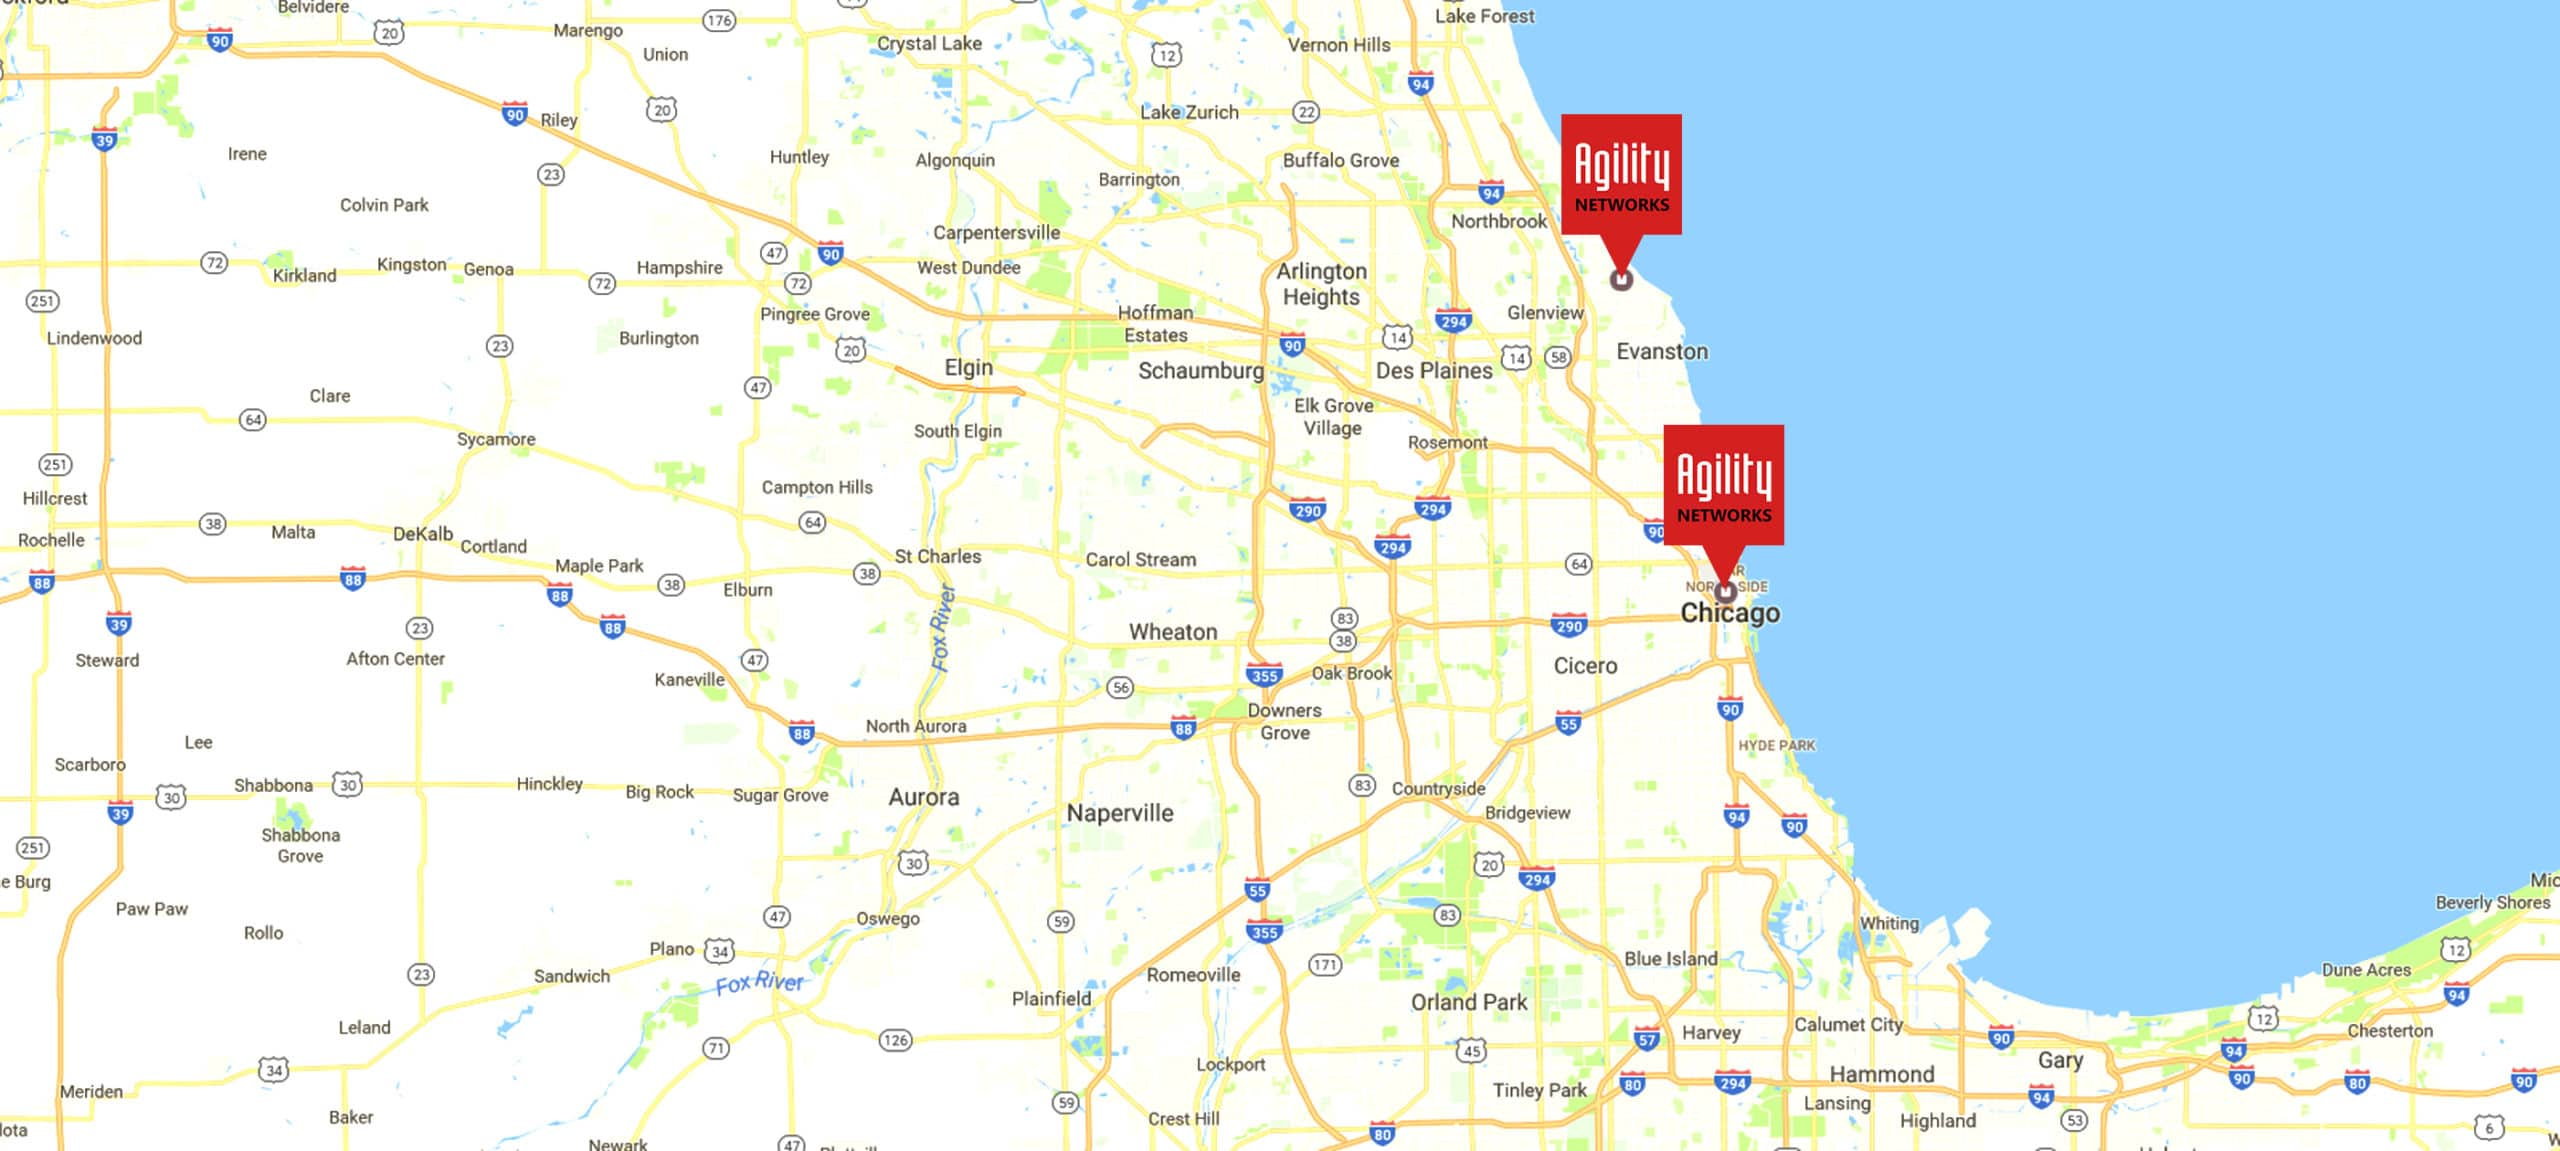 Police Warn Of Robberies On Cta Red And Orange Line Trains CTA - Chicago terminal map